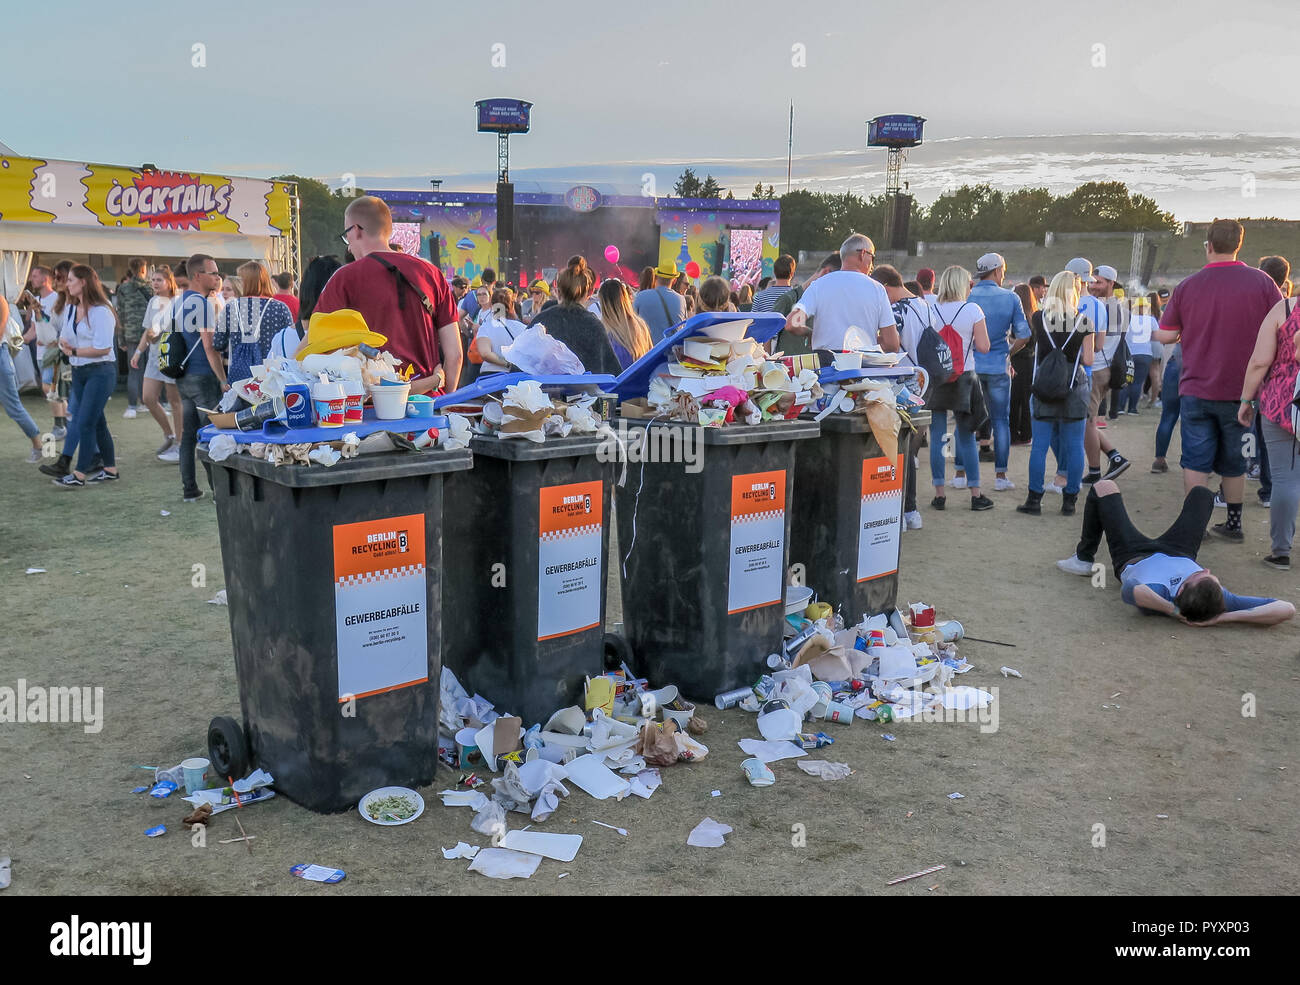 Garbage can, Lollapalooza festival, Olympic stadium, Westend, Berlin, Germany, Muelleimer, Lollapalooza-Festival, Olympiastadion, Deutschland - Stock Image